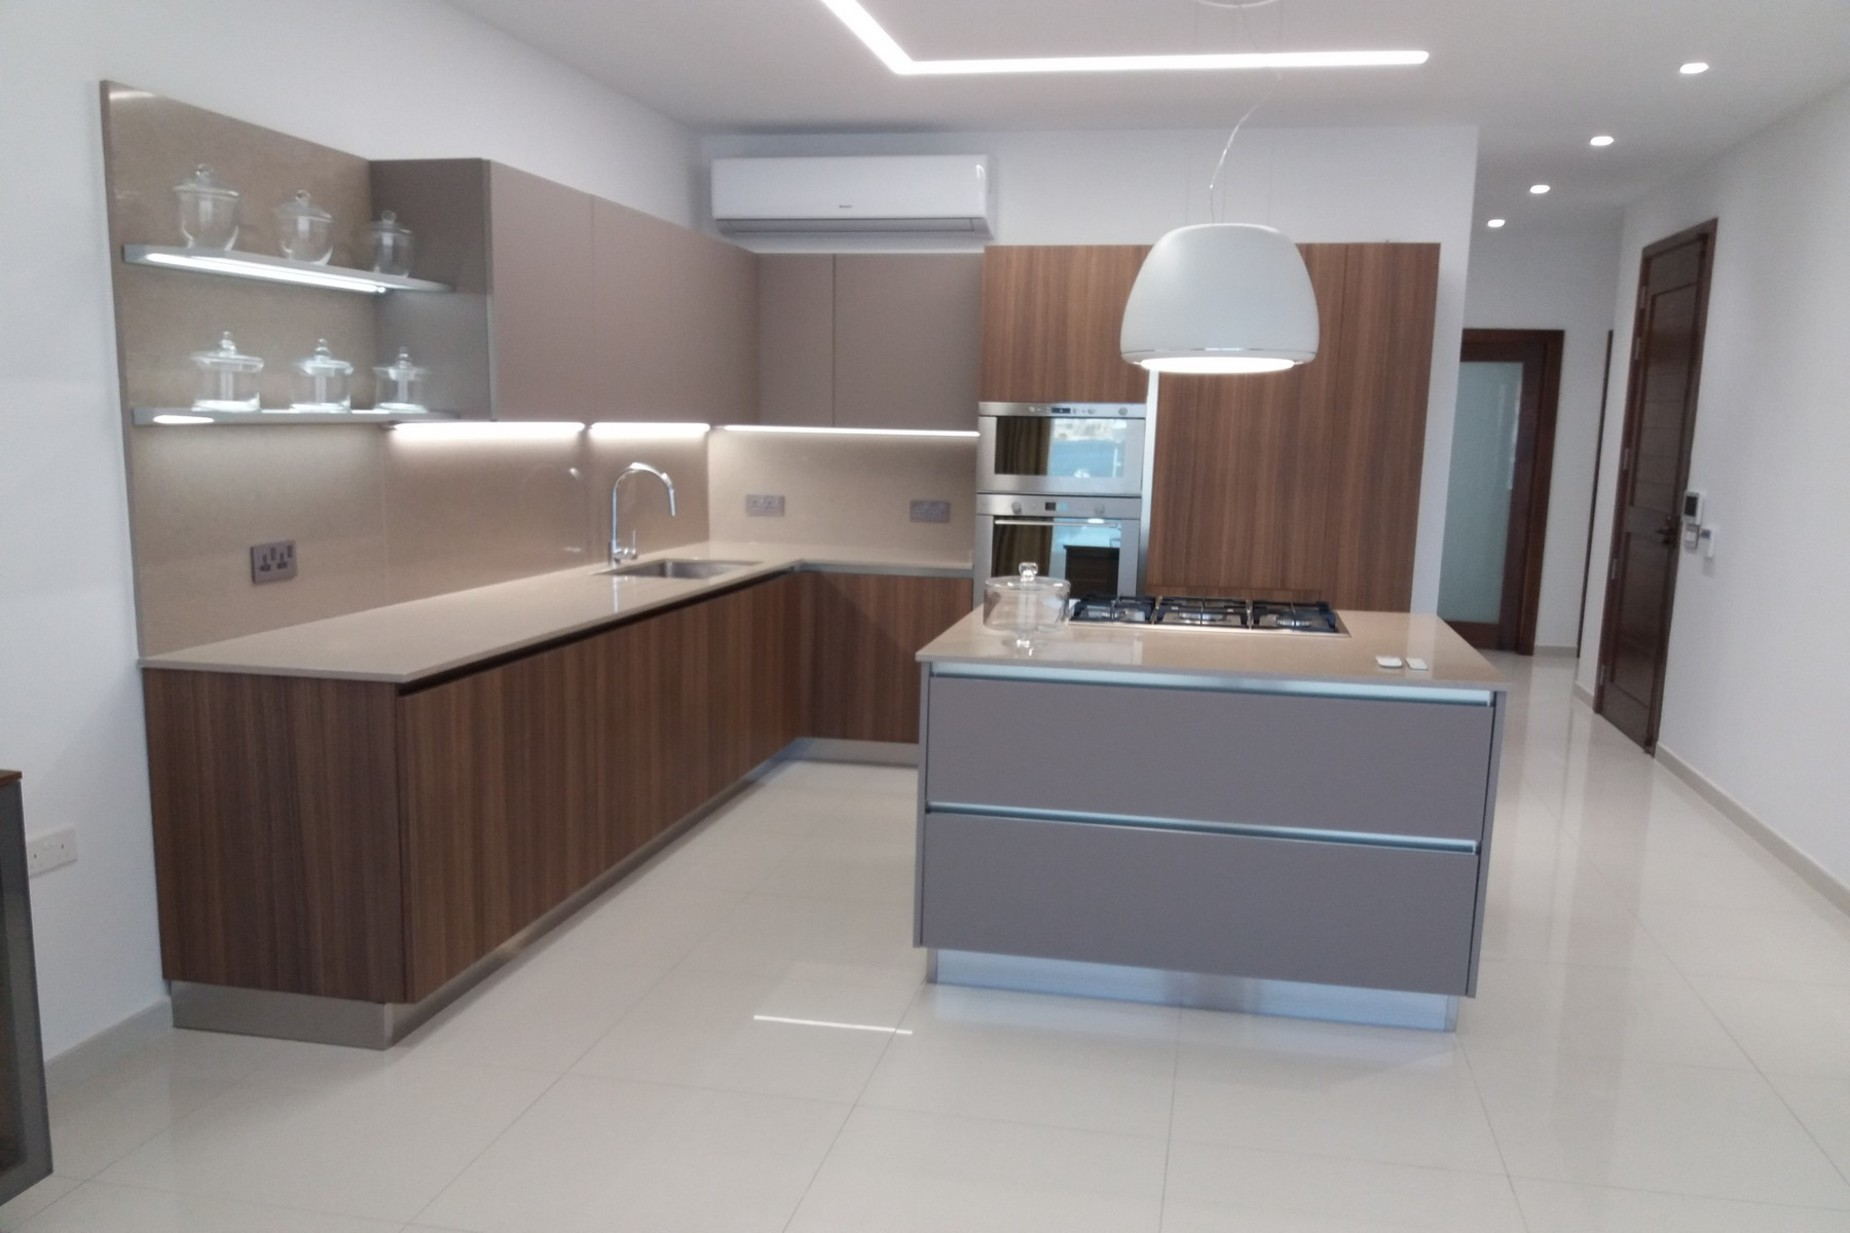 2 bed Apartment For Rent in Bugibba, Bugibba - thumb 7